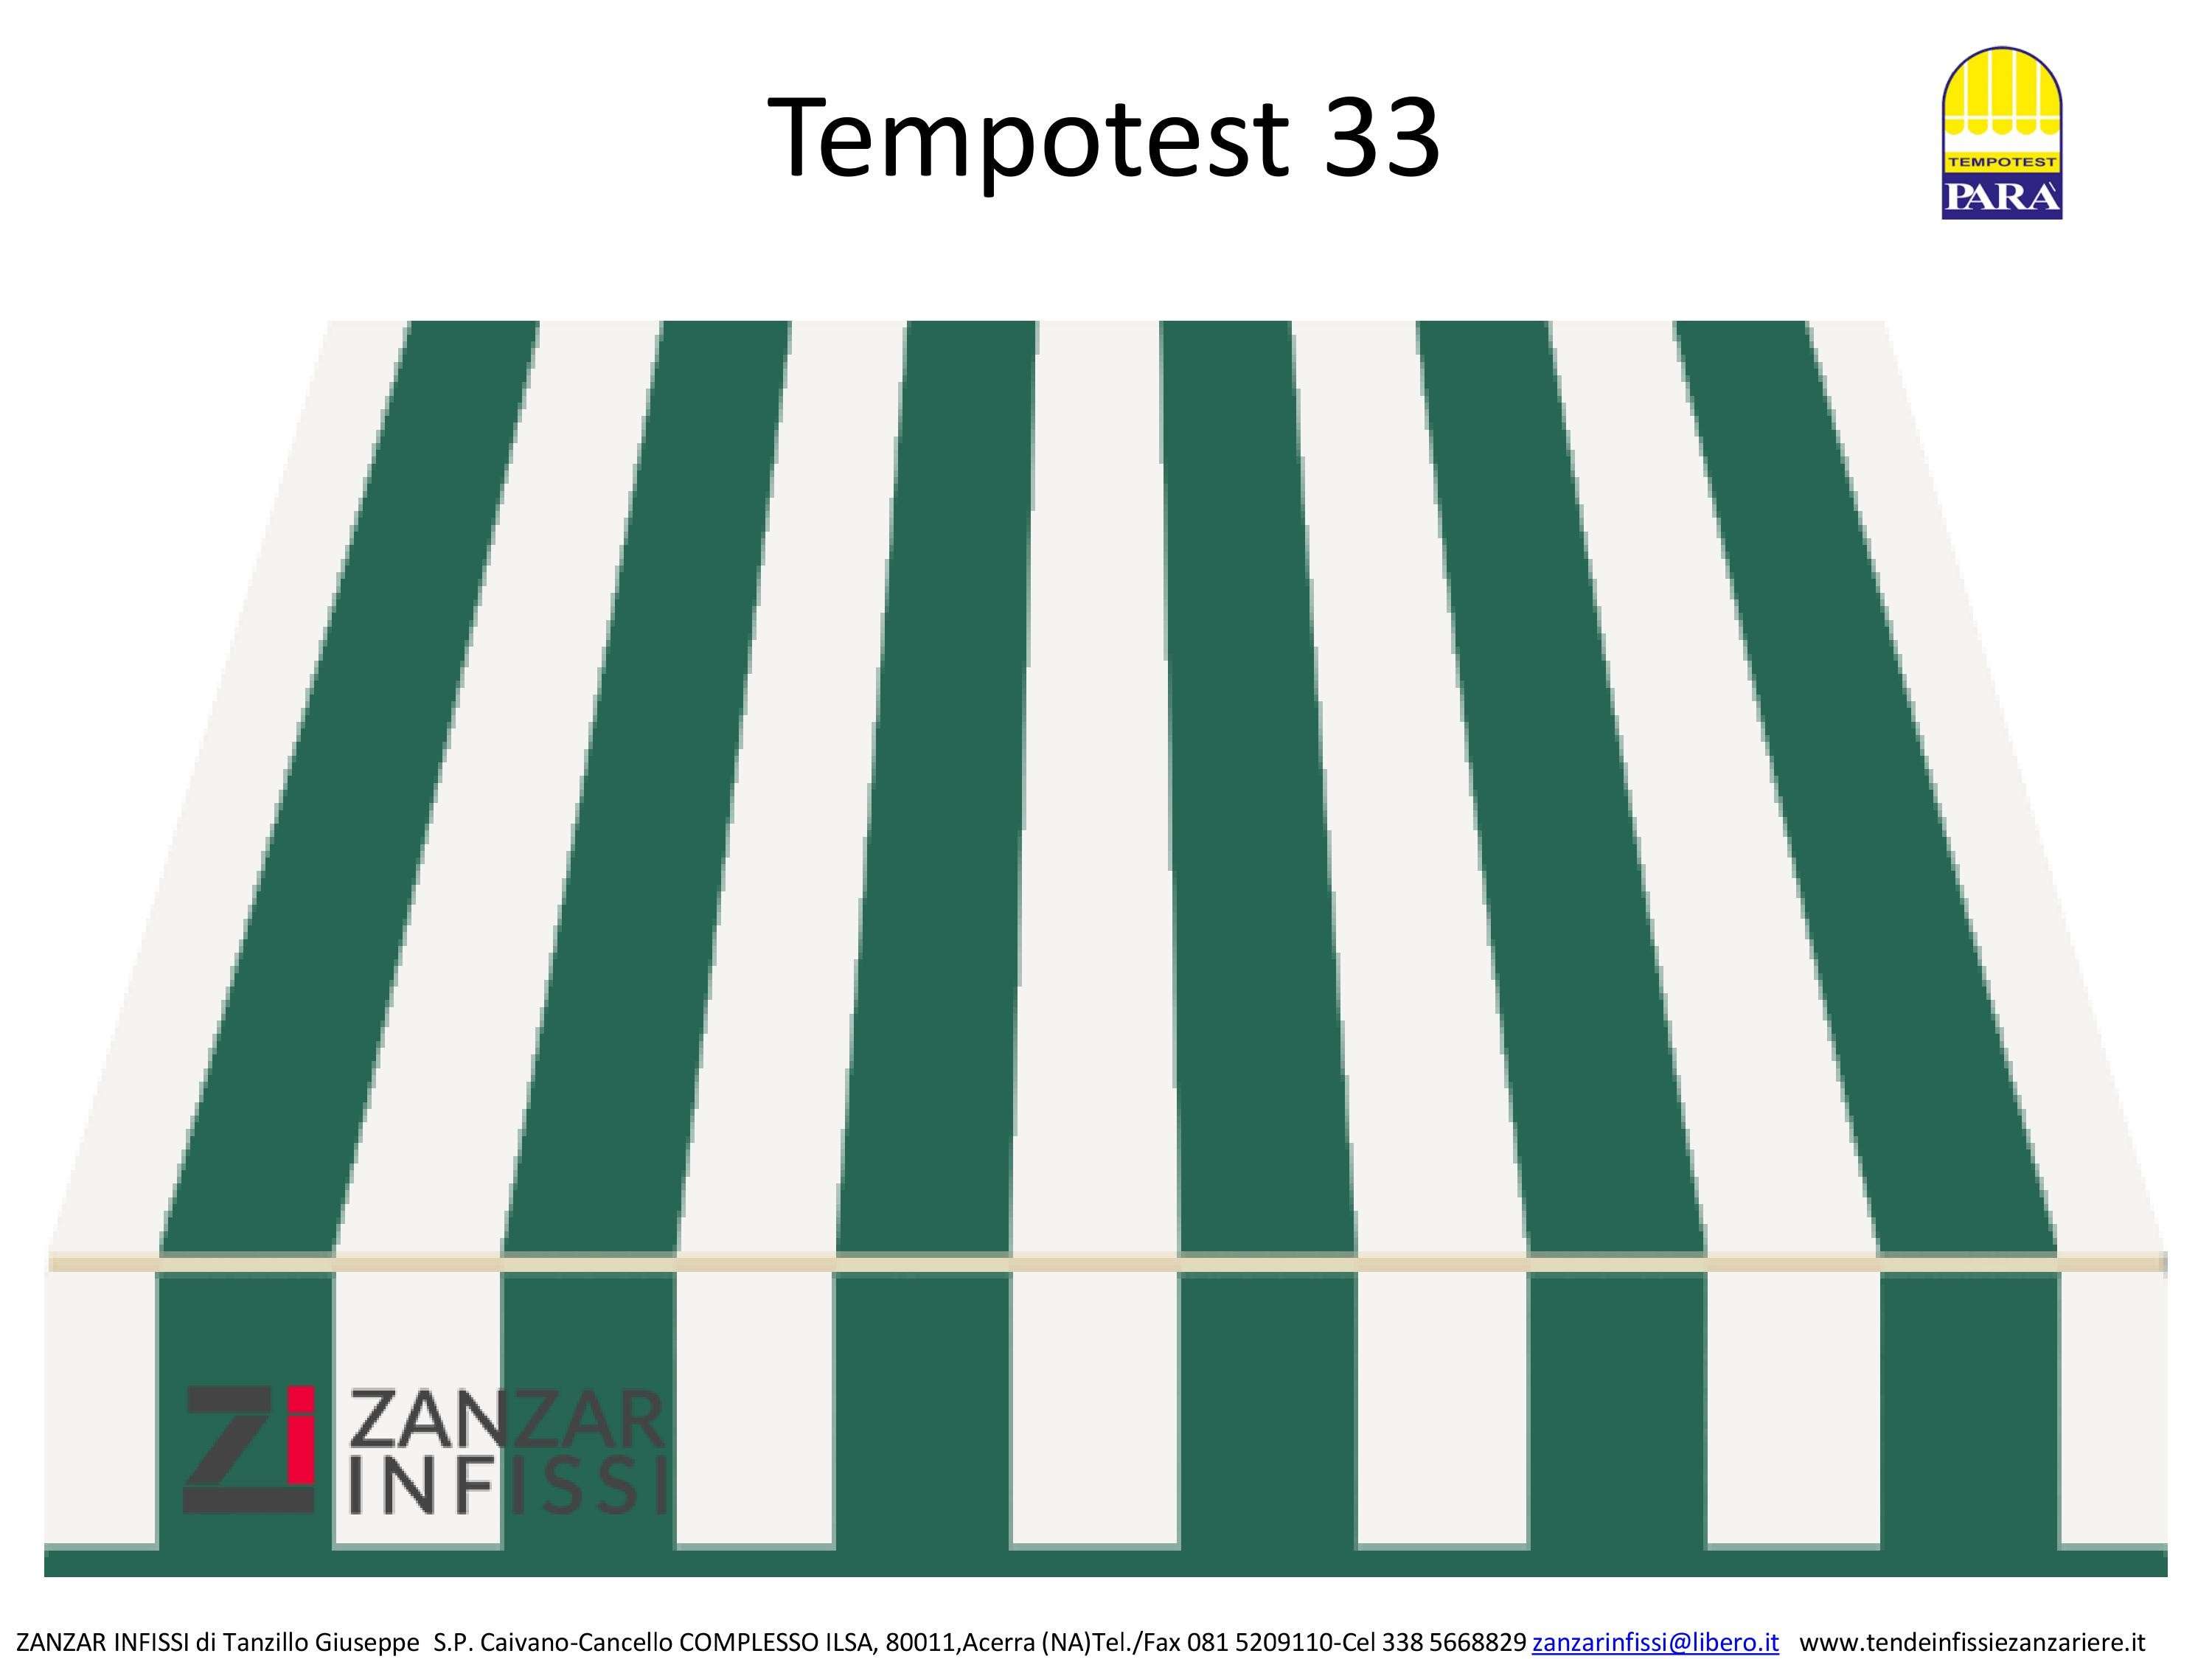 Tempotest 33